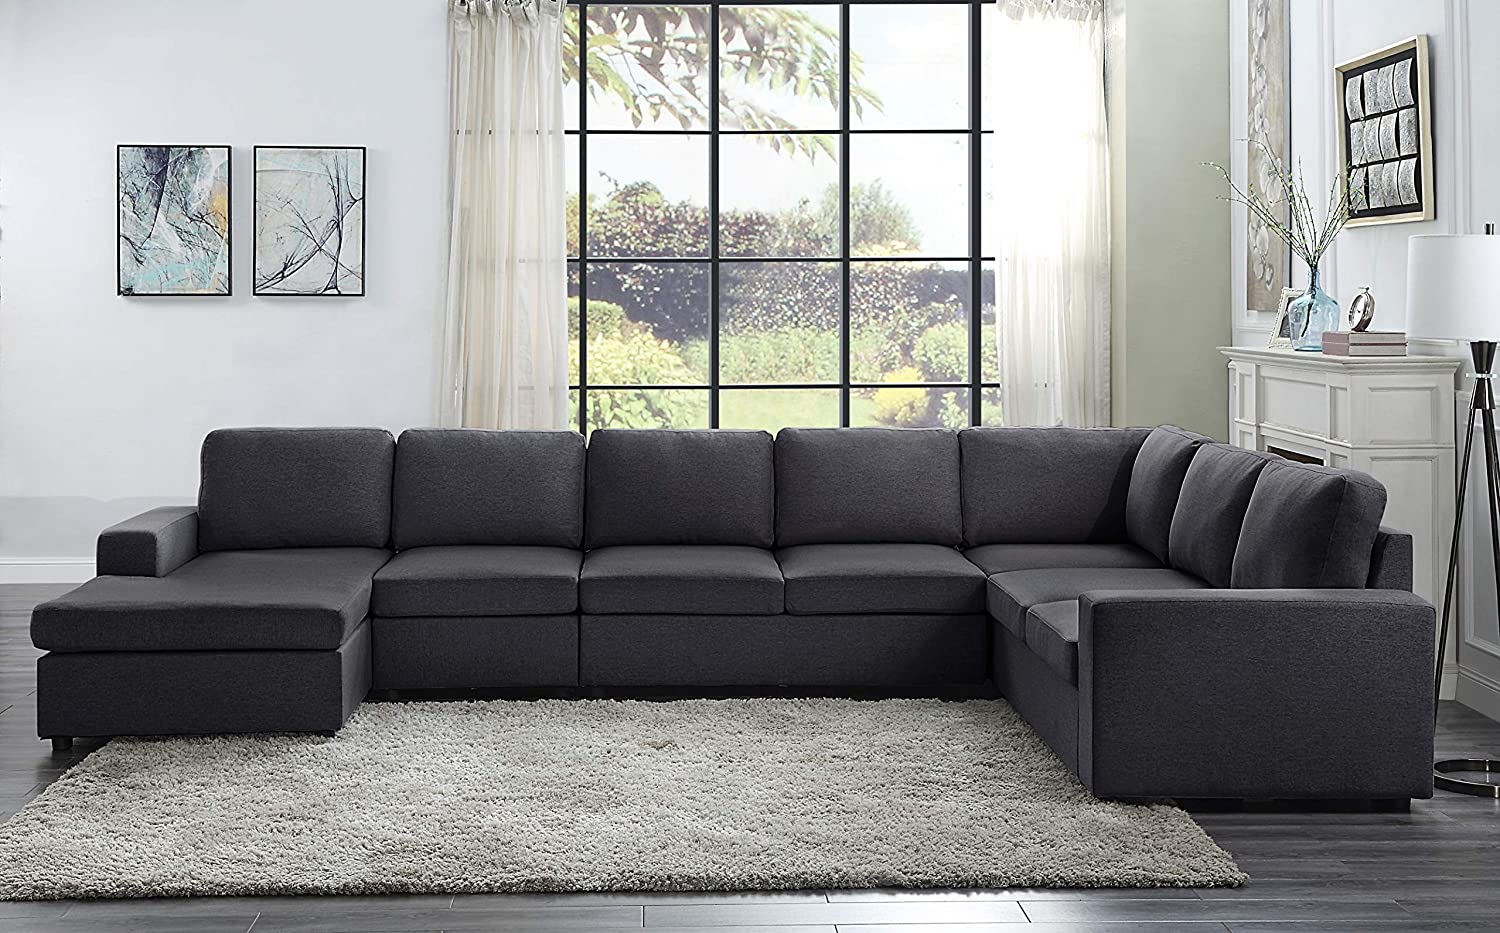 Lilola Home Tifton Modular Sectional Sofa With Reversible Chaise Furniture Decor